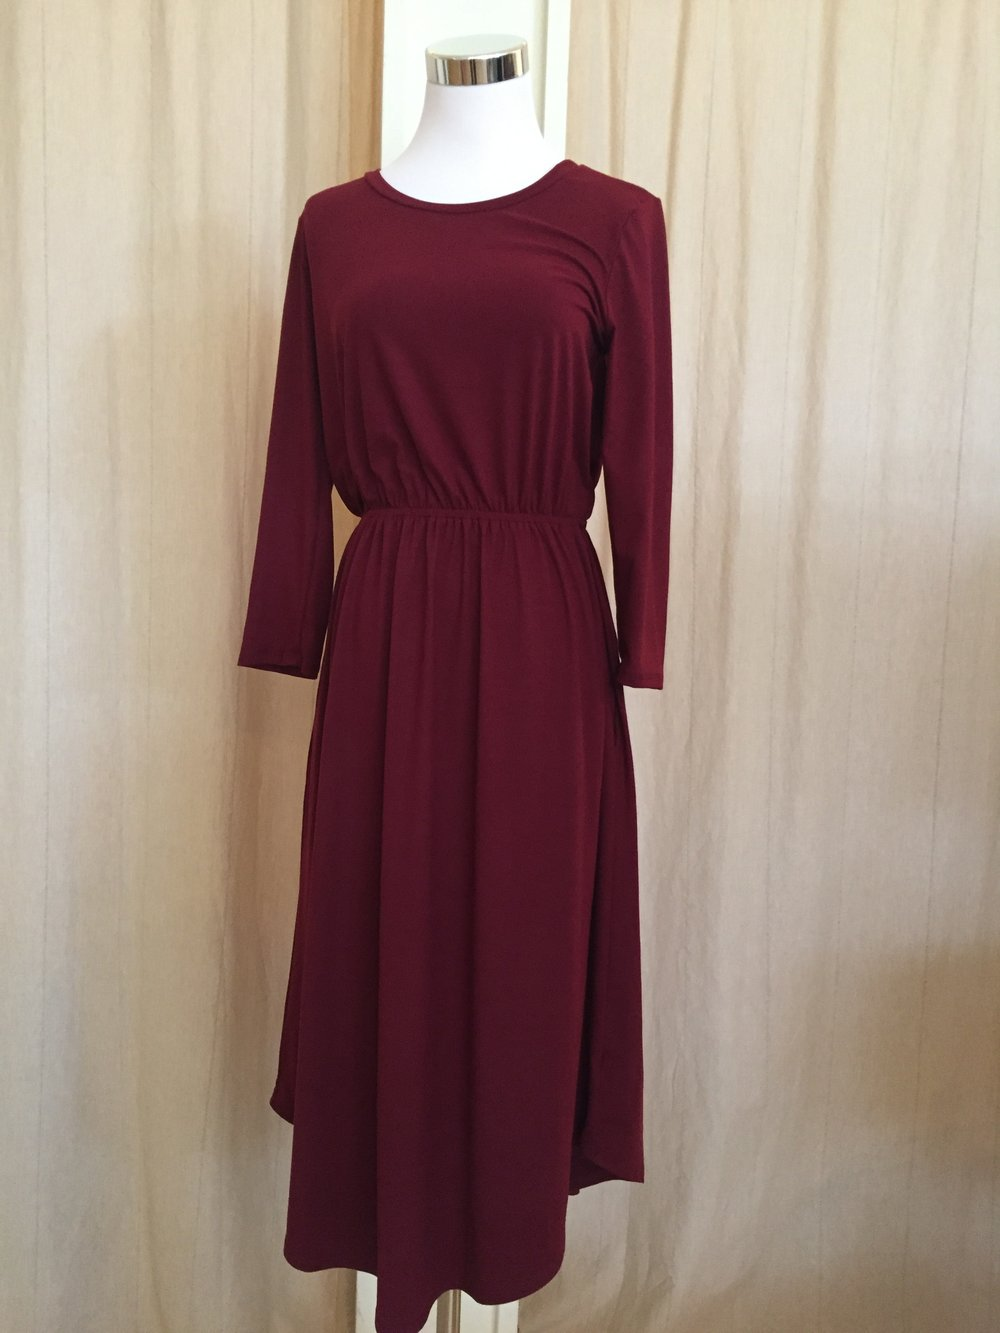 Reborn Red Dress w/ Pockets ($35)